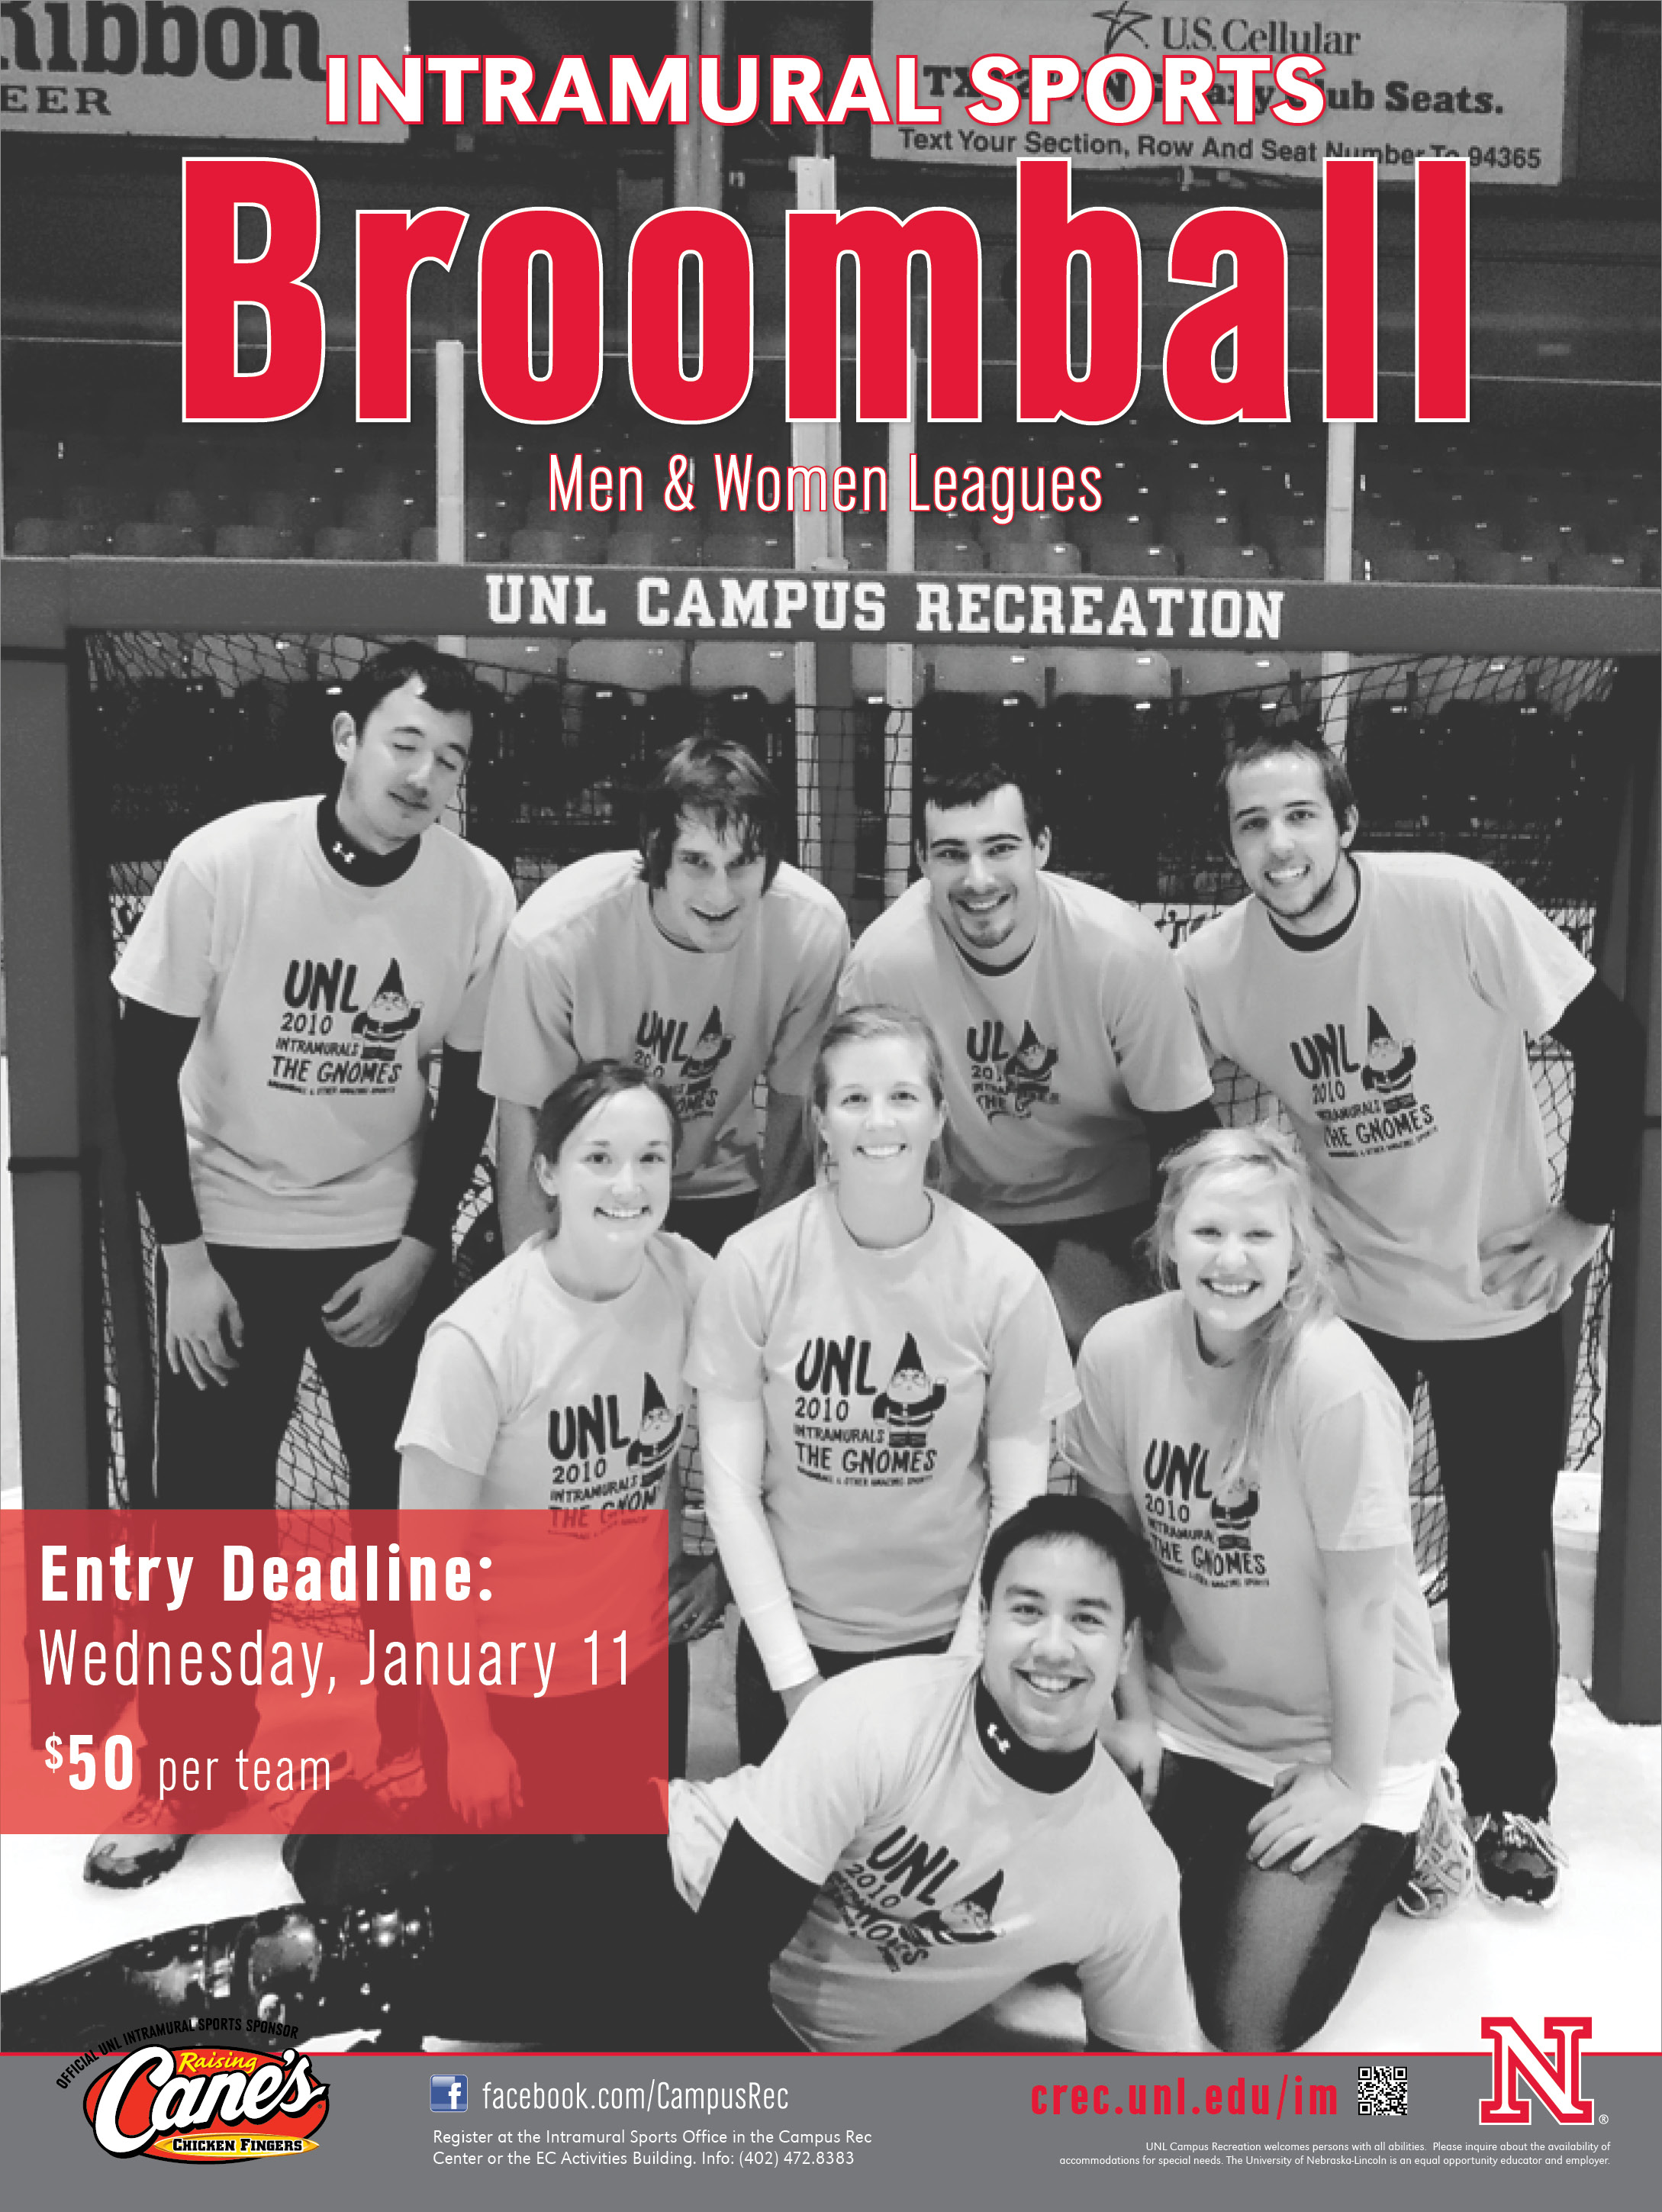 Men's and women's teams will play this spring to become Intramural Sports' champions. Entry deadline is Jan. 11.